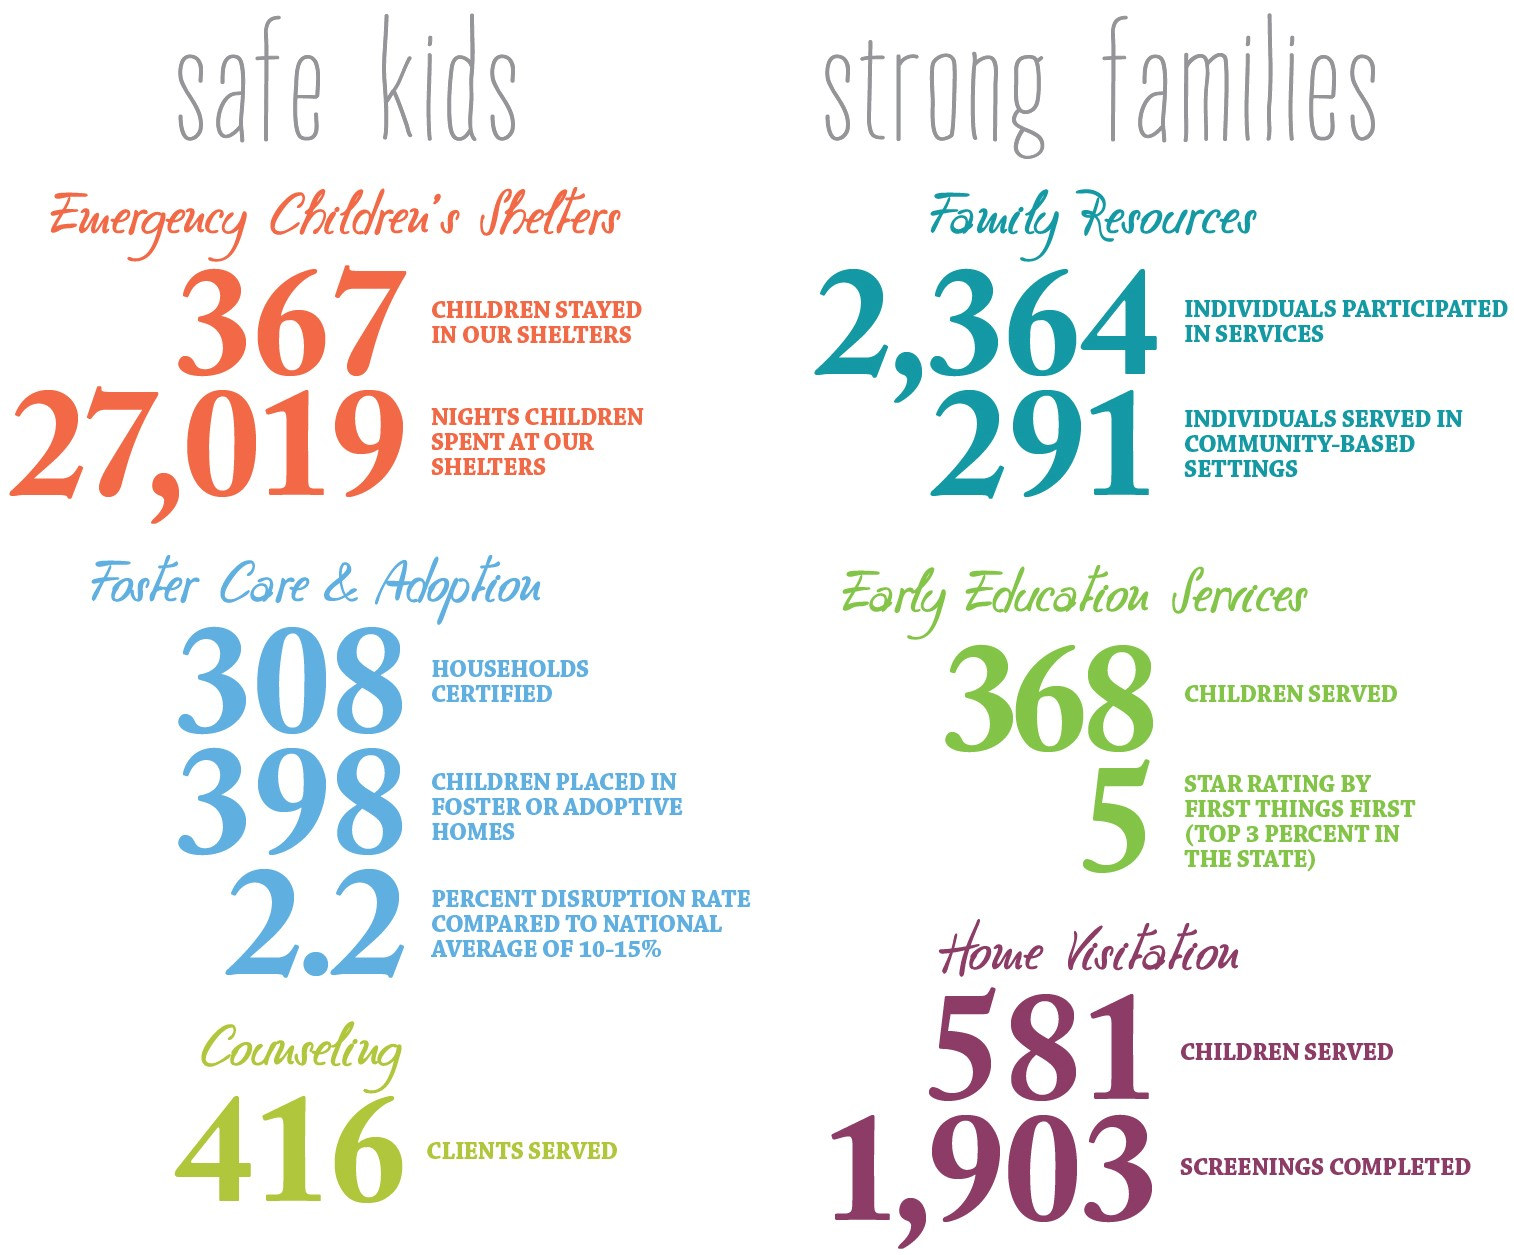 Safe Kids, Strong Families Emergency Children's Shelters 367 children stayed in our shelters 27,019 nights children spent at our shelters Foster Care and Adoption 308 Households Certified 398 Children placed in Foster or Adoptive Homes 2.2 Percent disruption rate compared to national average of 10-15% Counseling 416 Clients served Family Resources 2,364 Individuals participated in services 291 Individuals served in community-based settings Early Education Service 368 Children served 5 Star rating by First Things First (Top 3 percent in the state) Home Visitation 581 Children served 1,903 Screenings completed